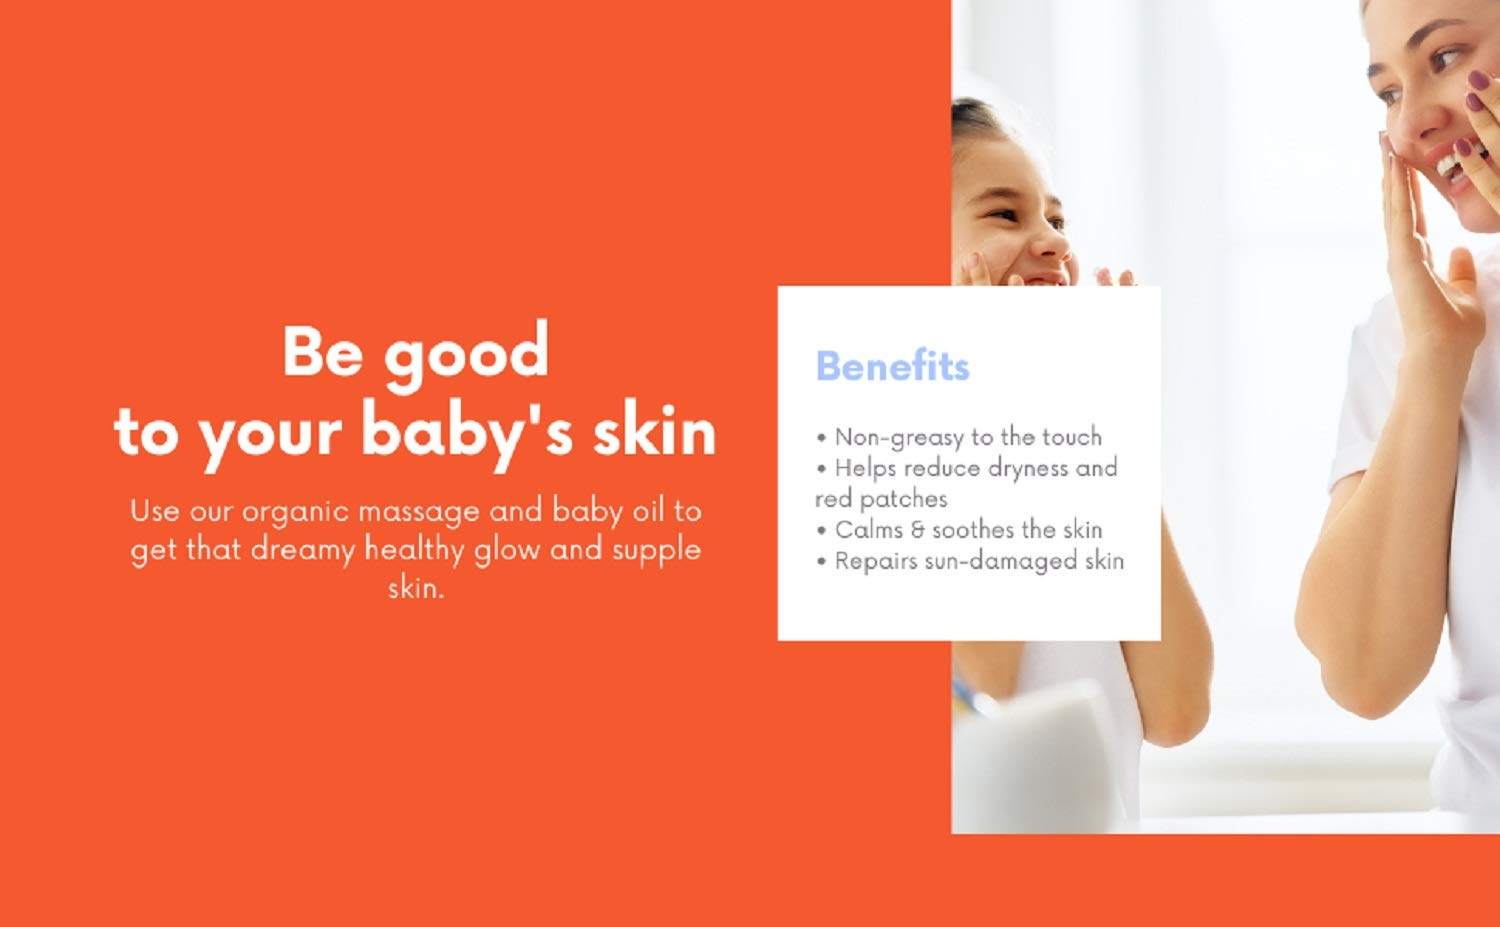 Nature's Baby Organics Baby Oil - Soothing & Hydrating Shower Oil - No Mineral Oil & Non-Greasy - Soft & Healthy Skin - Massage Oil for Newborn & Kids - Sunflower & Olive Oil - Mandarin Coconut (2 Pack 4 oz)